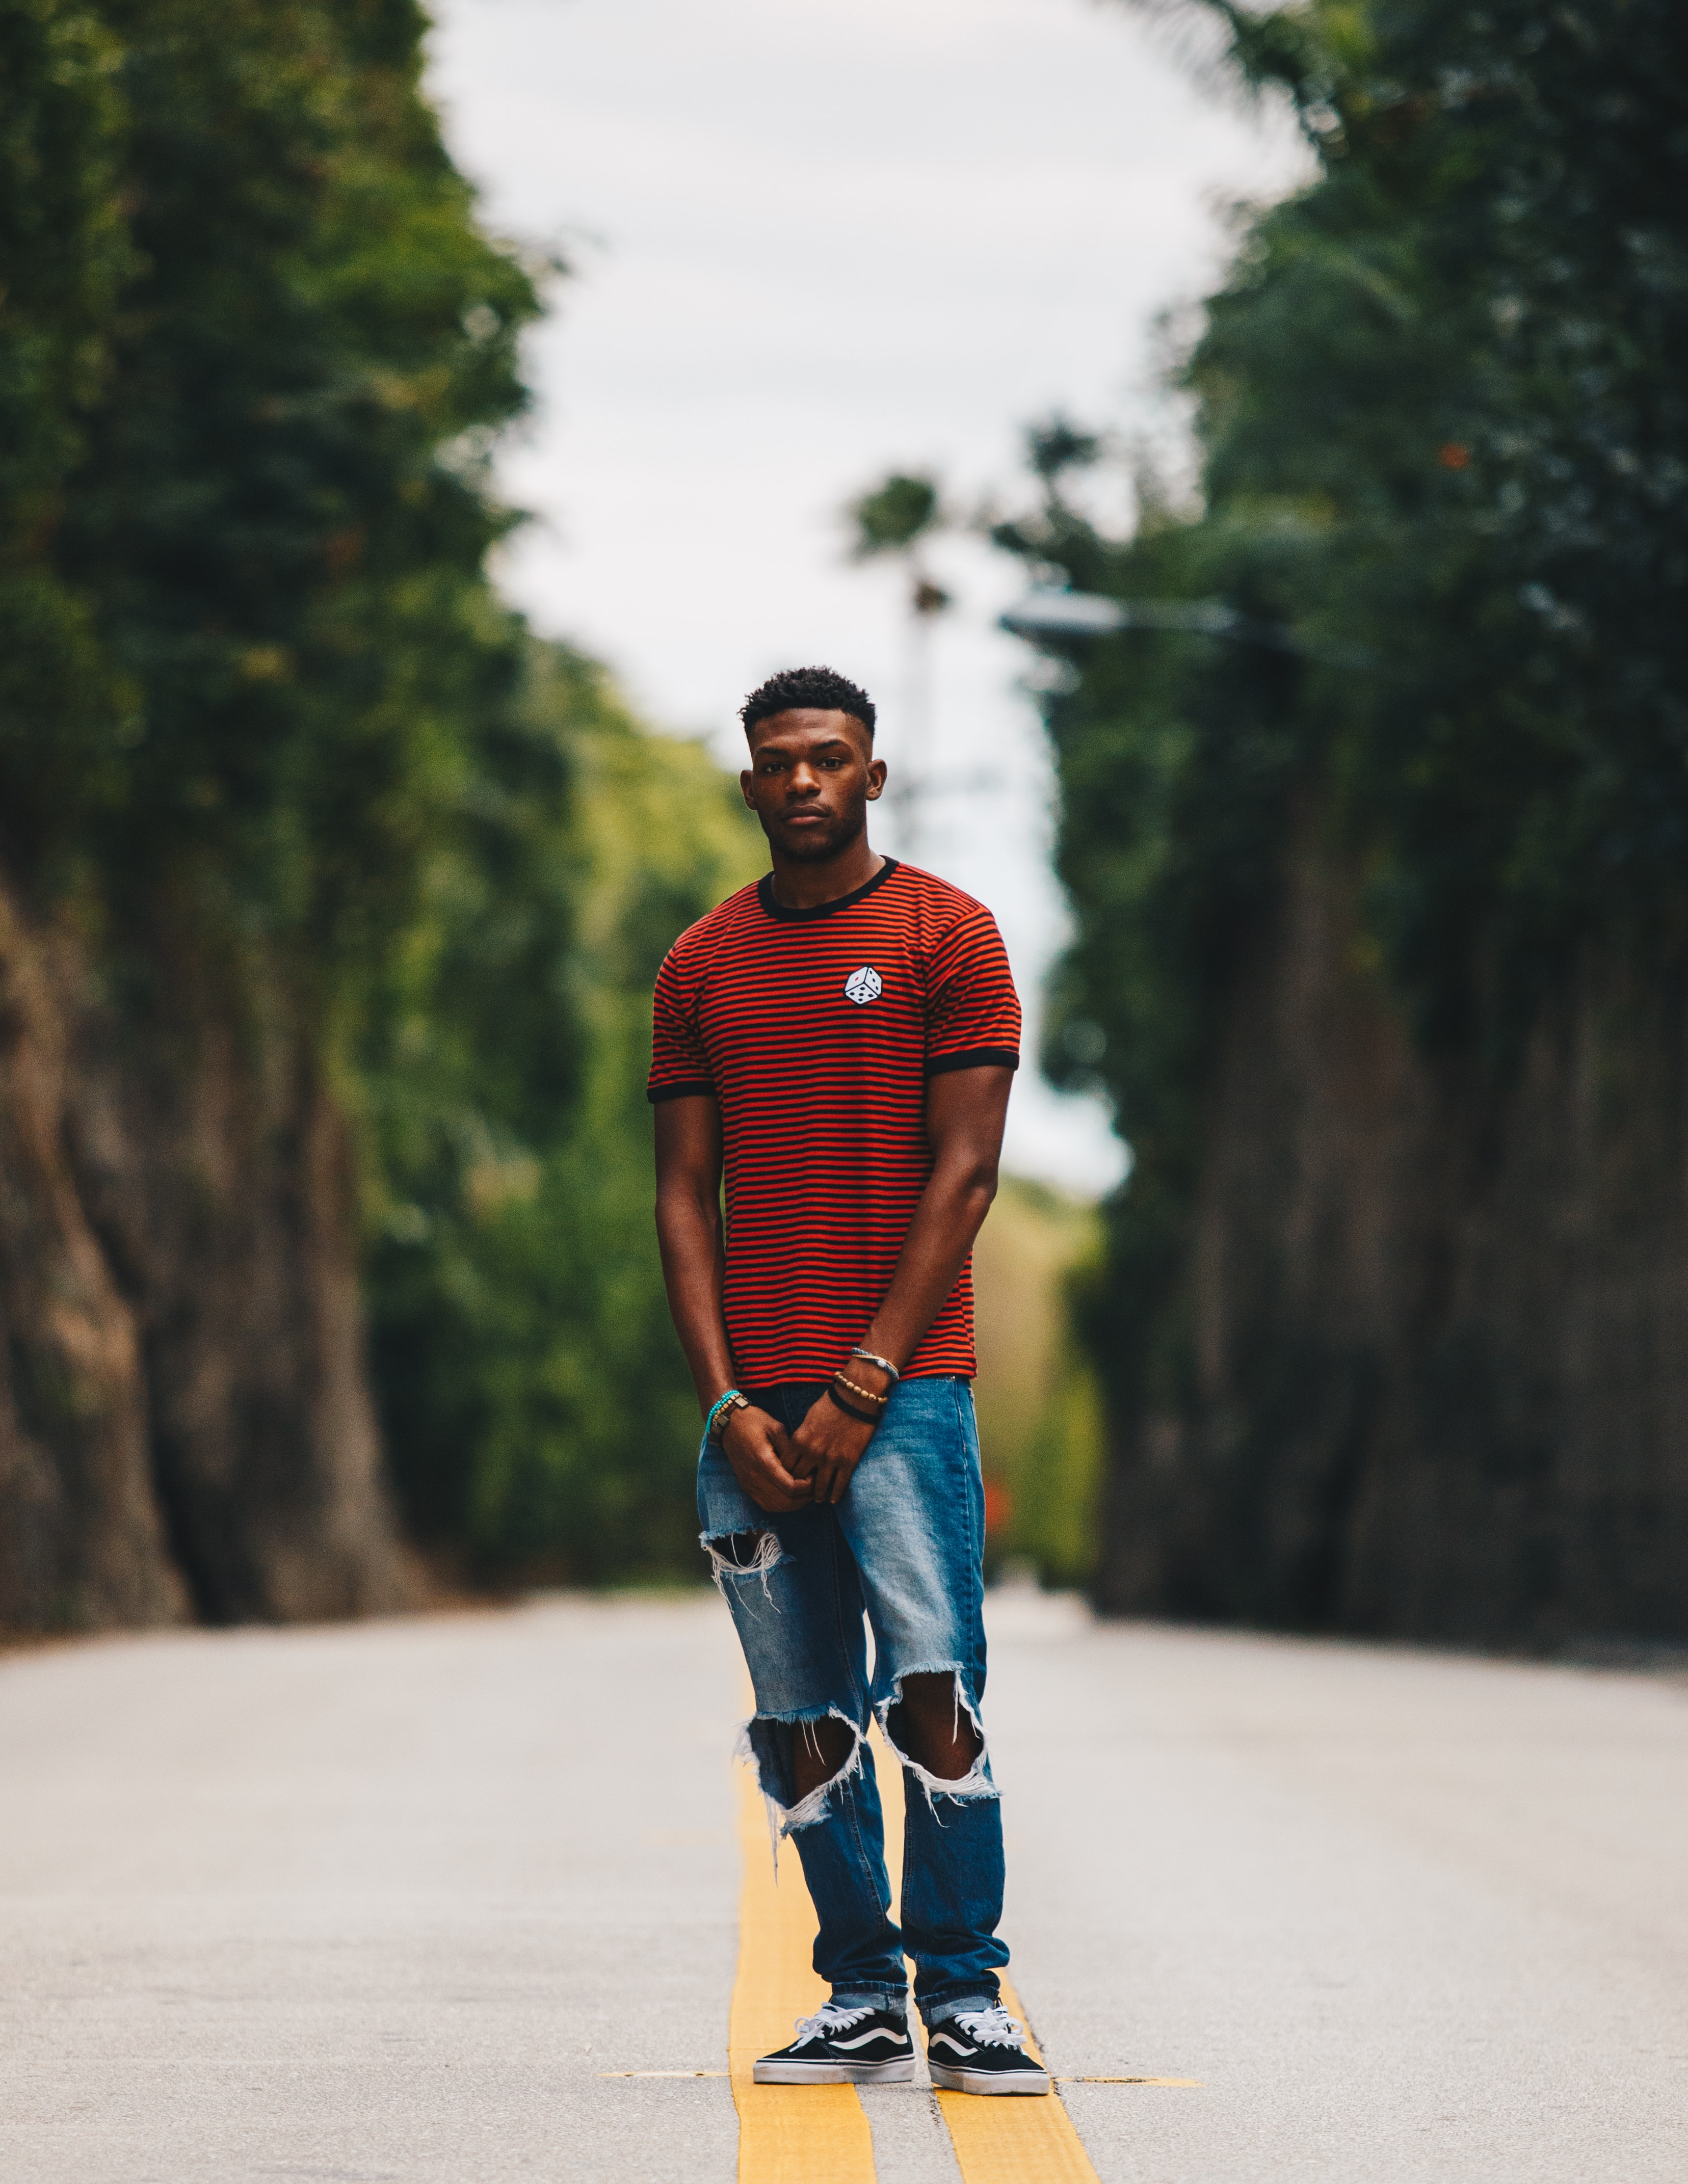 Photo of a Black man in a red striped shirt and ripped blue jeans standing in the middle of a scenic road.